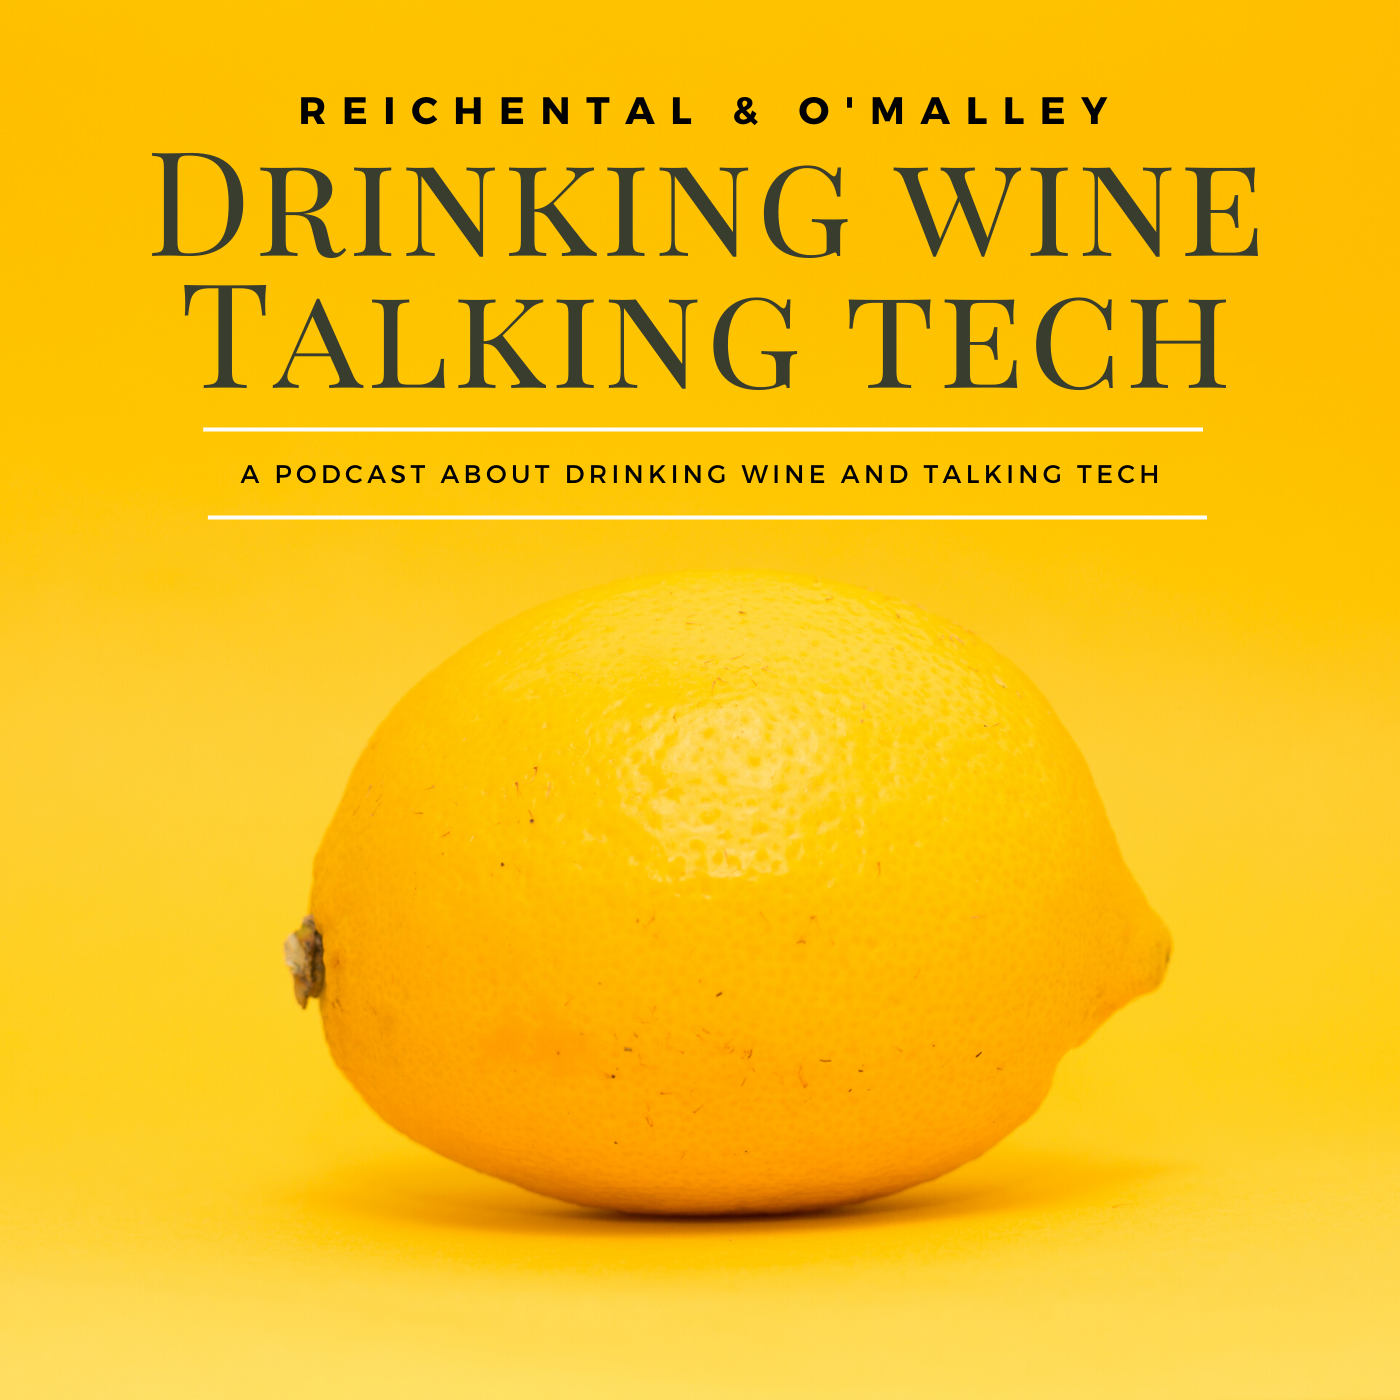 Special Live Event: Drinking Wine Talking Tech on Clubhouse, Feb 11, 2021